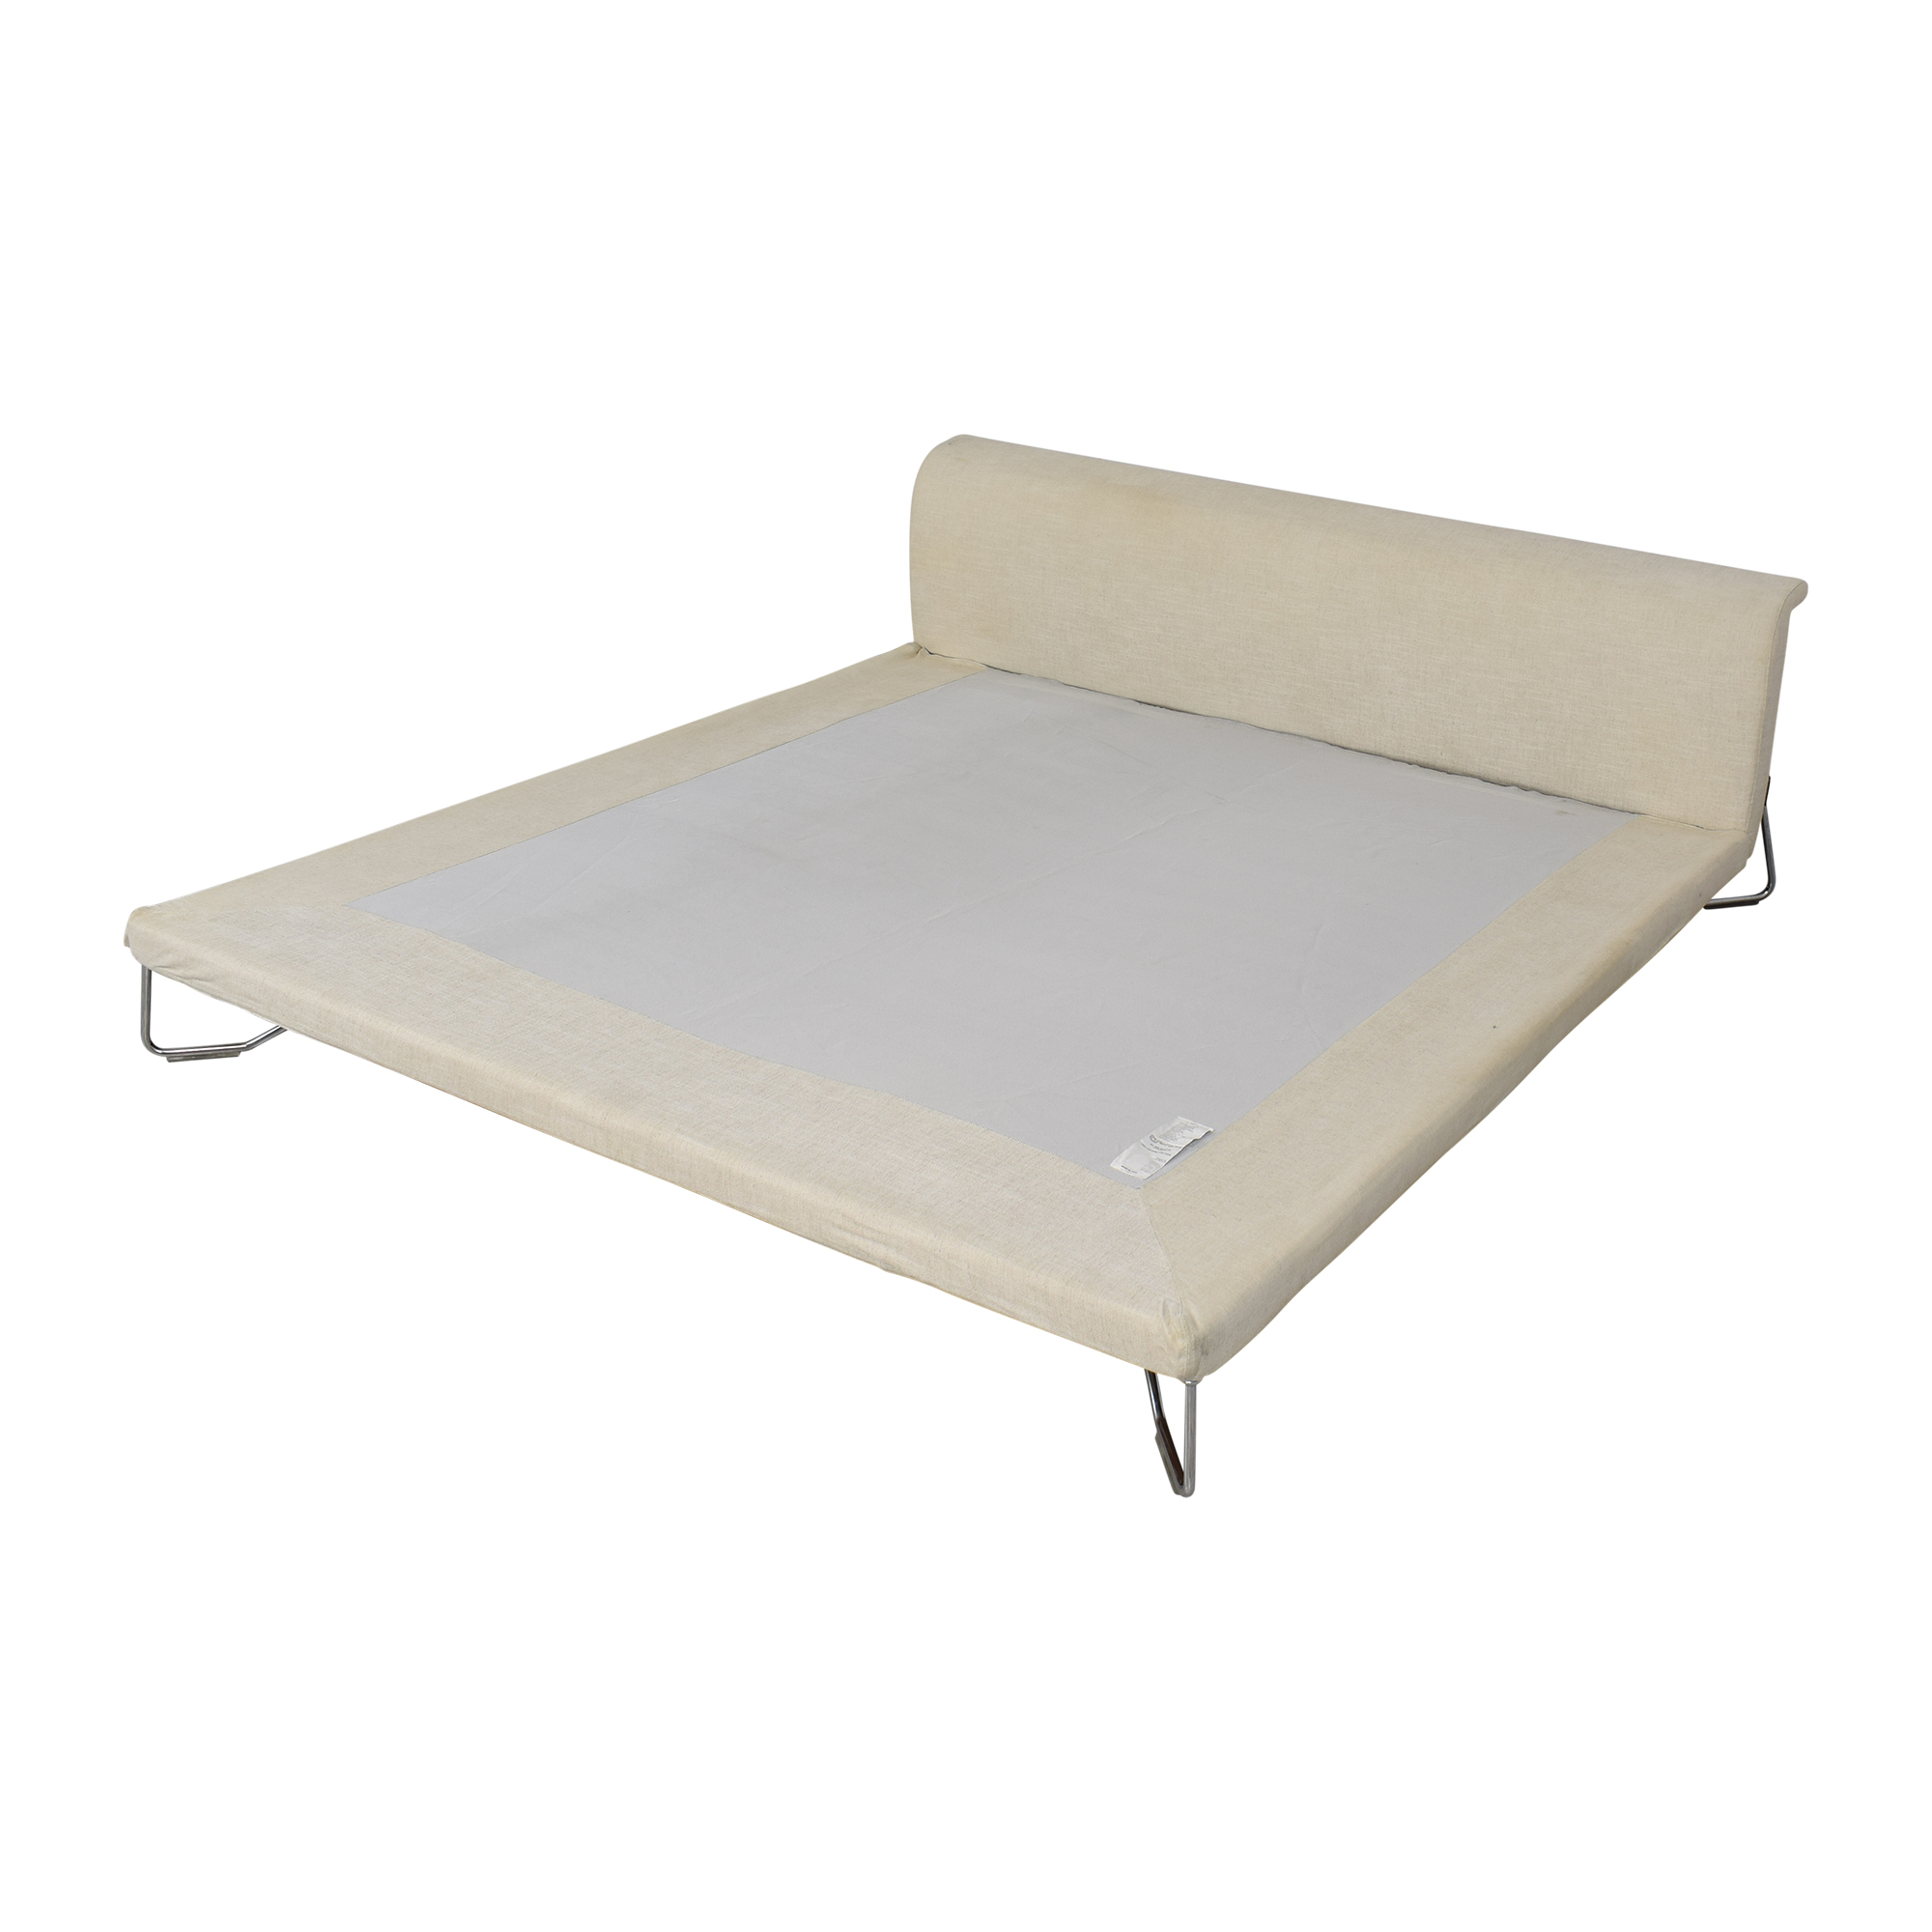 Tacchini Tacchini Barry Modern King Bed second hand